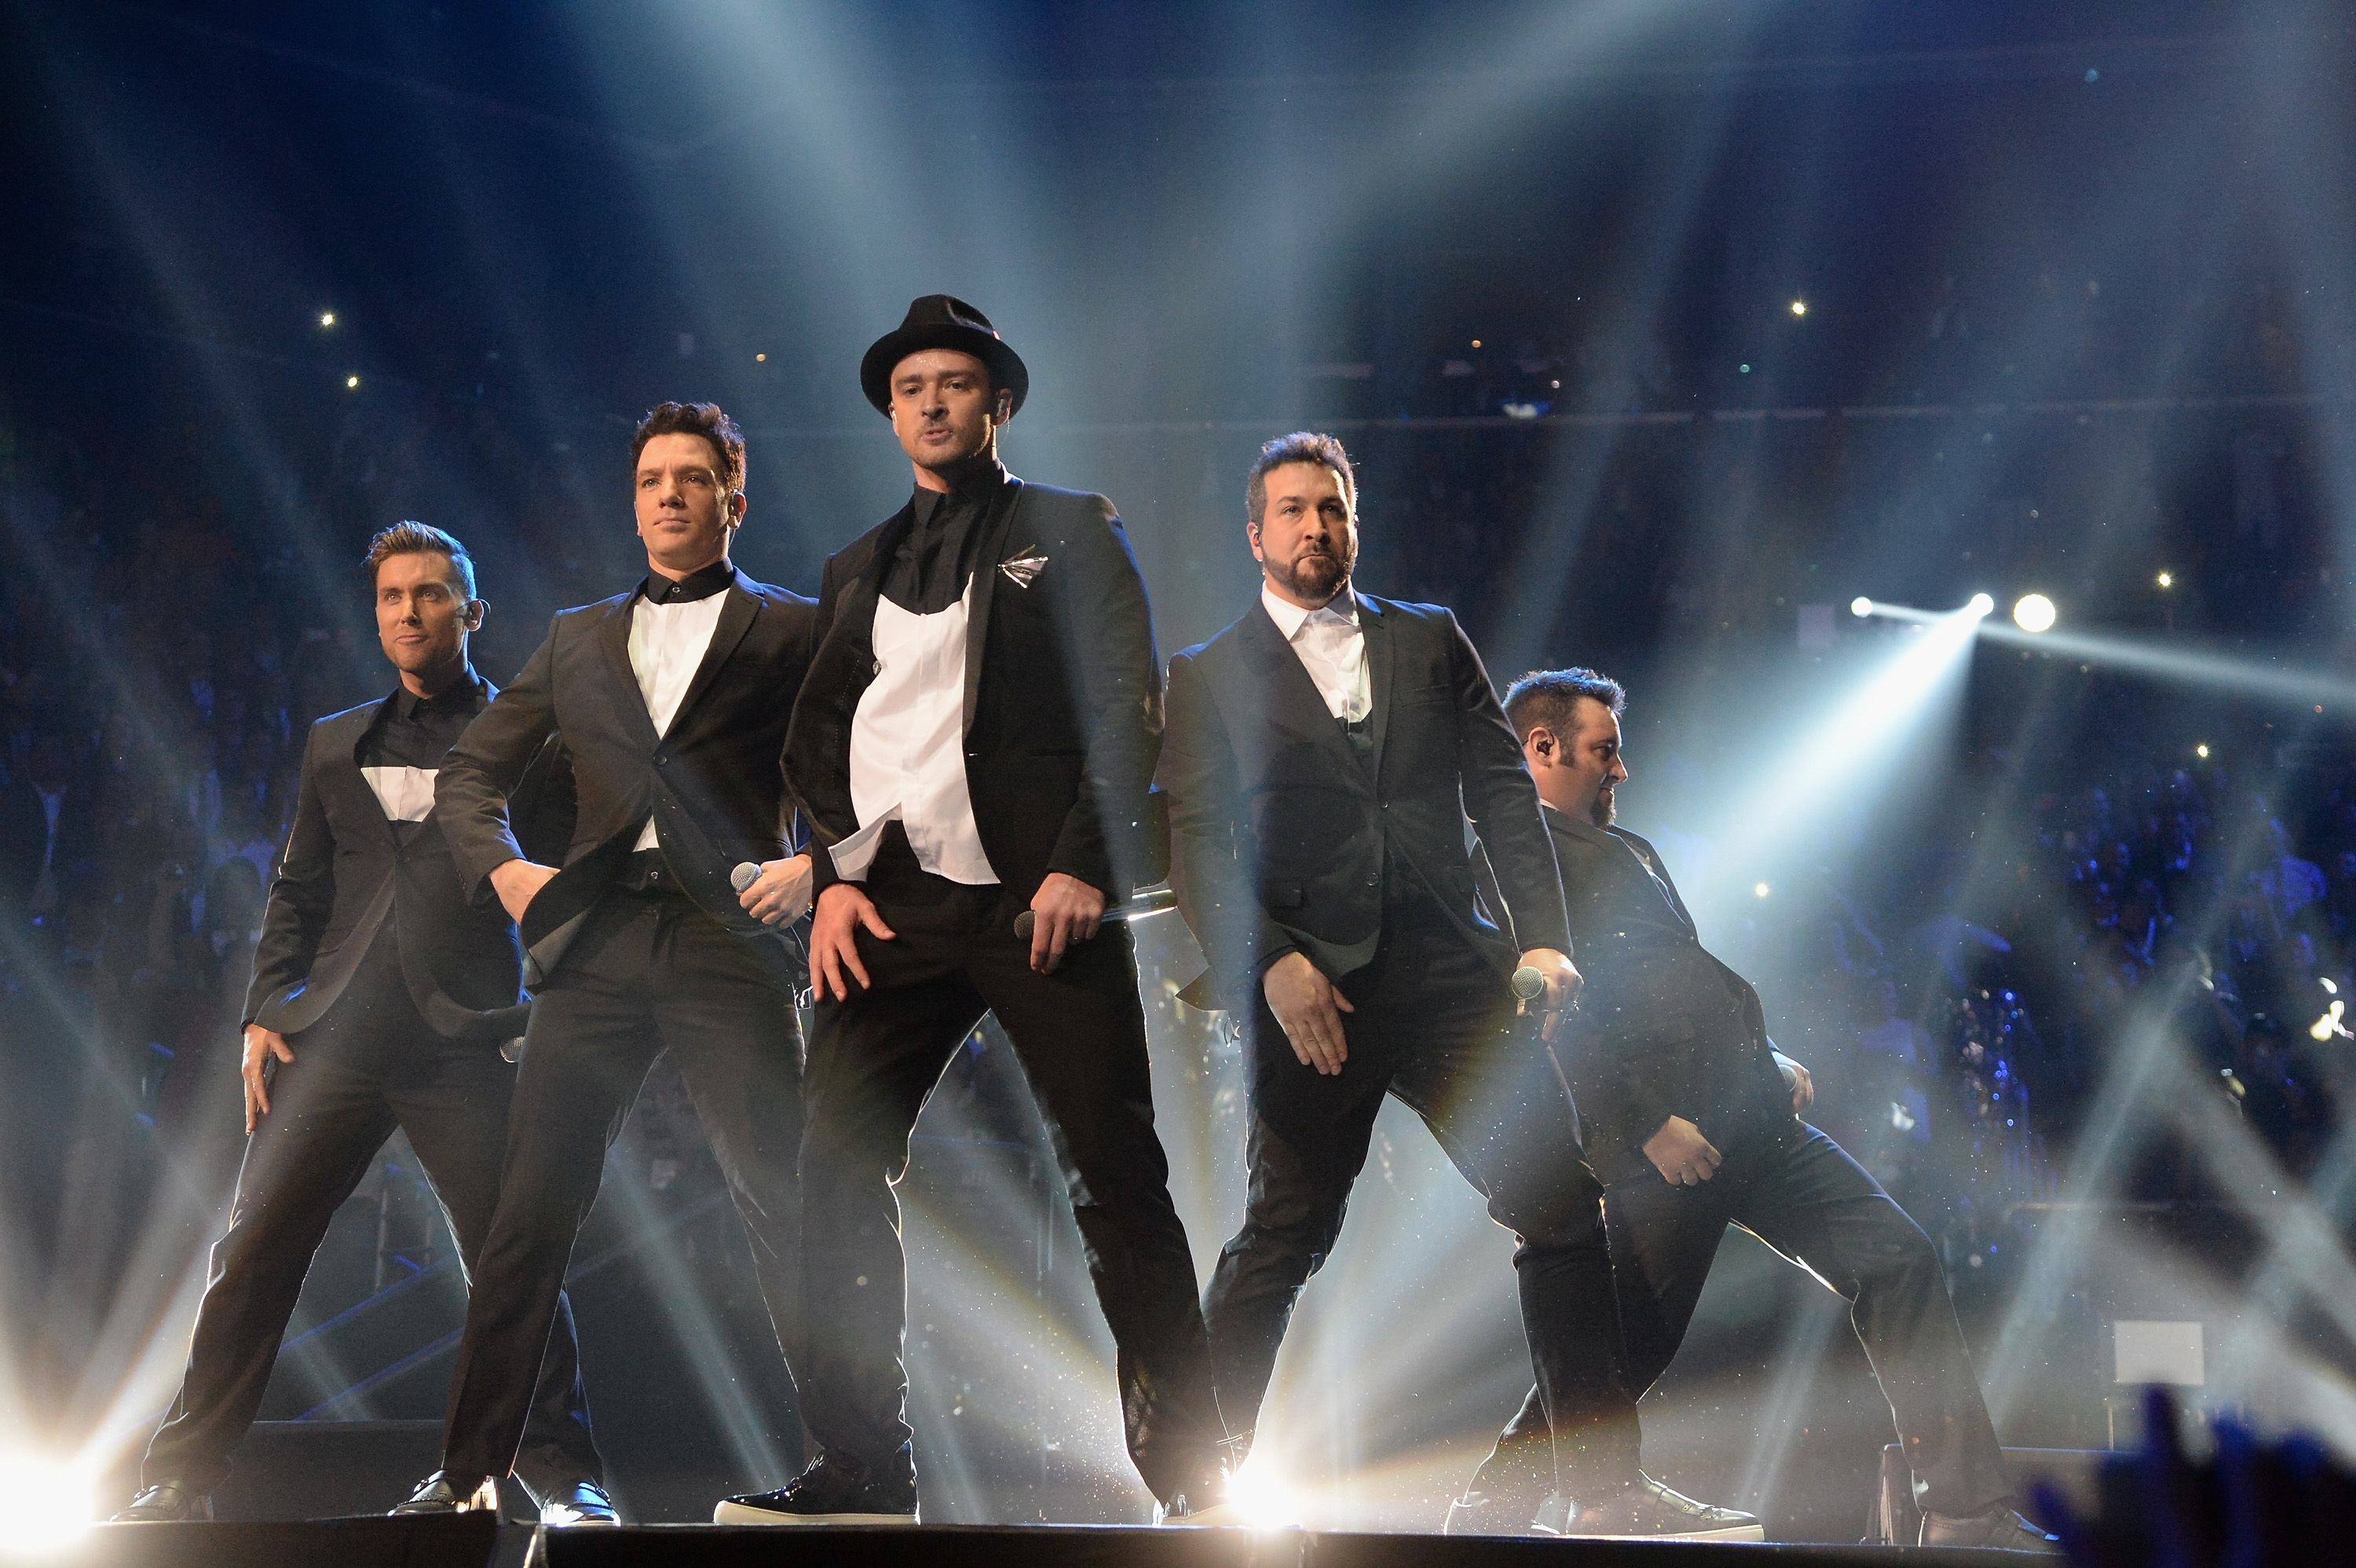 Lance Bass, JC Chasez, Justin Timberlake, Joey Fatone and Chris Kirkpatrick of *NSYNC perform during the MTV Video Music Awards at the Barclays Center in Brooklyn on Aug. 25, 2013.